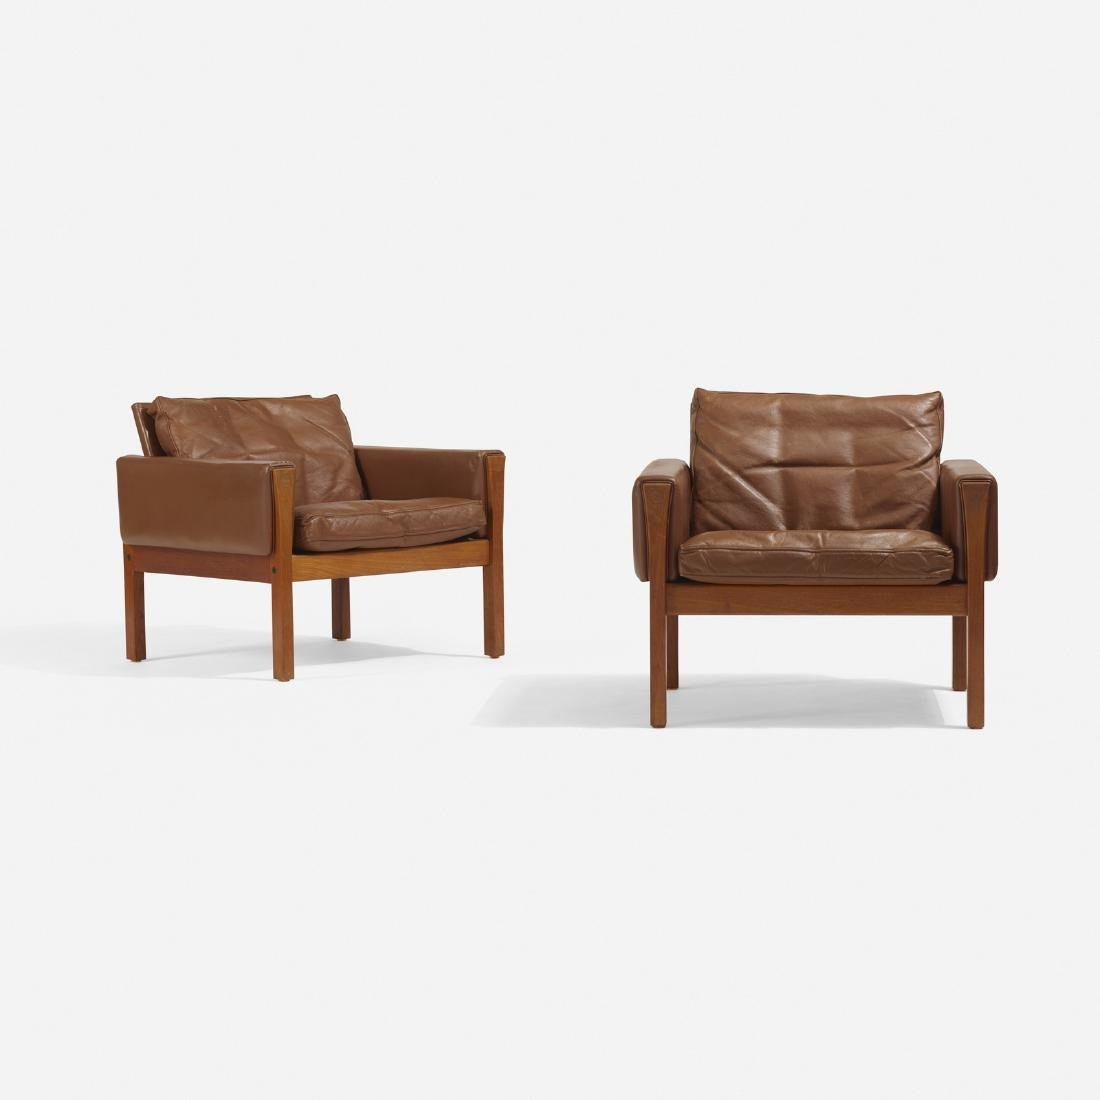 Hans J. Wegner, lounge chairs model AP62, pair